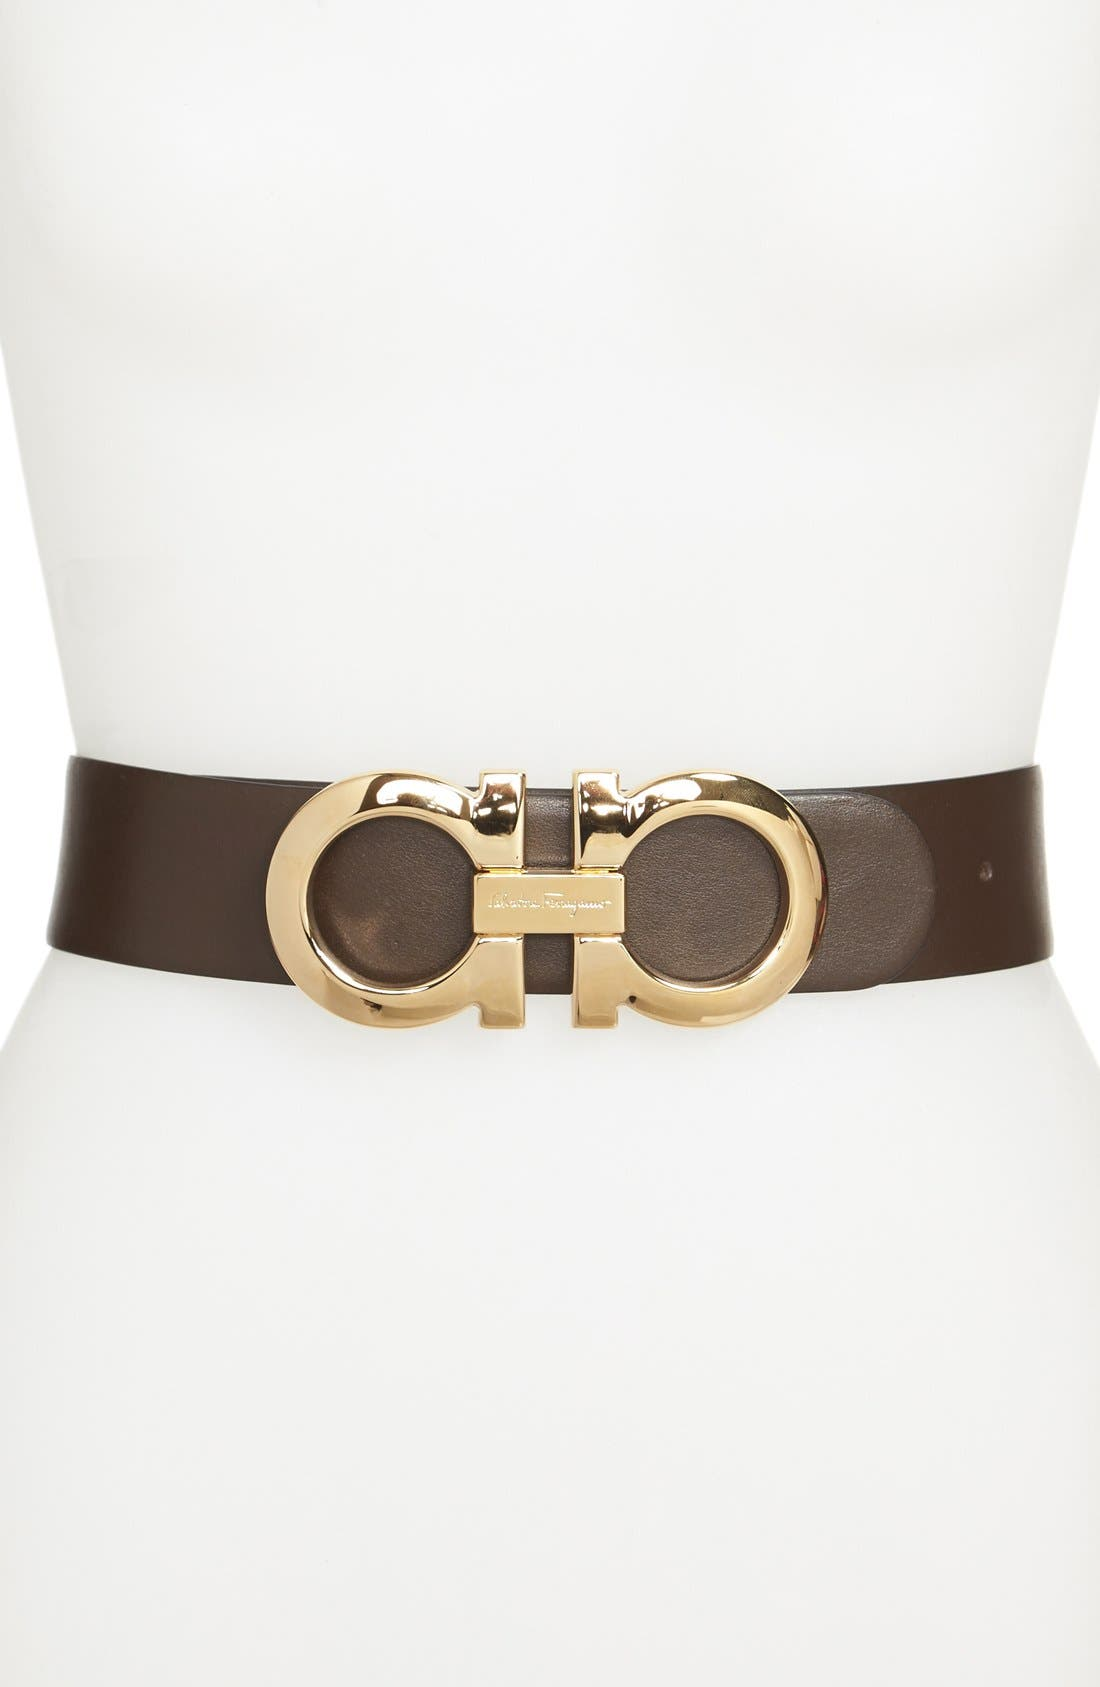 Alternate Image 1 Selected - Salvatore Ferragamo Reversible Calfskin Belt